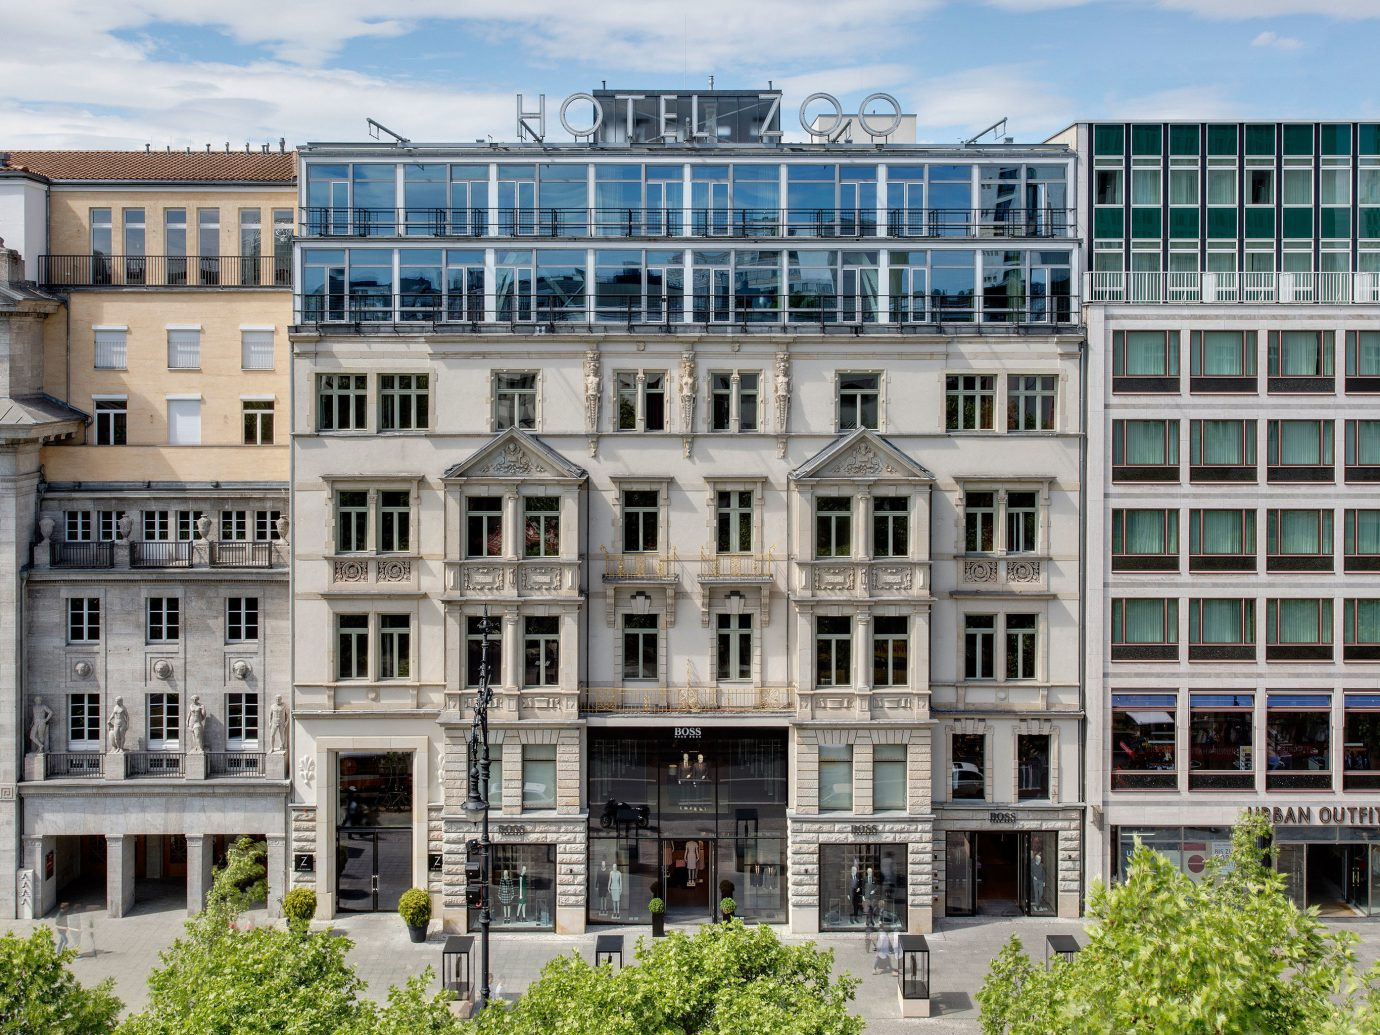 Berlin Boutique Hotels Germany Hotels Luxury Travel building outdoor large property condominium tower block City Architecture neighbourhood residential area facade Downtown estate plaza apartment headquarters tall